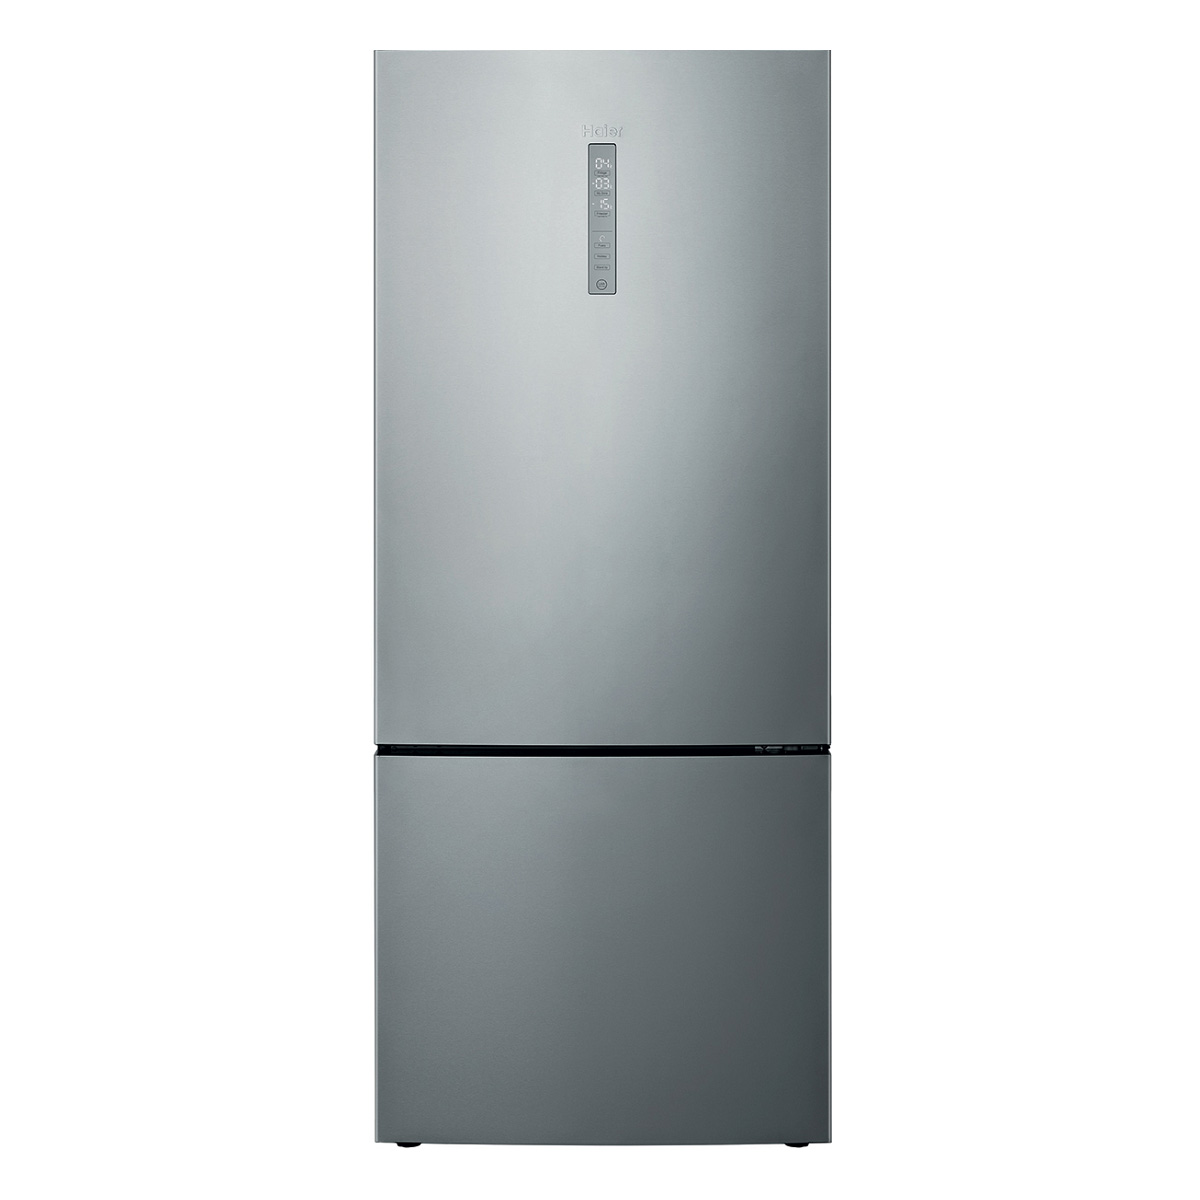 Haier HBM450SA1 450L Bottom Mount Fridge